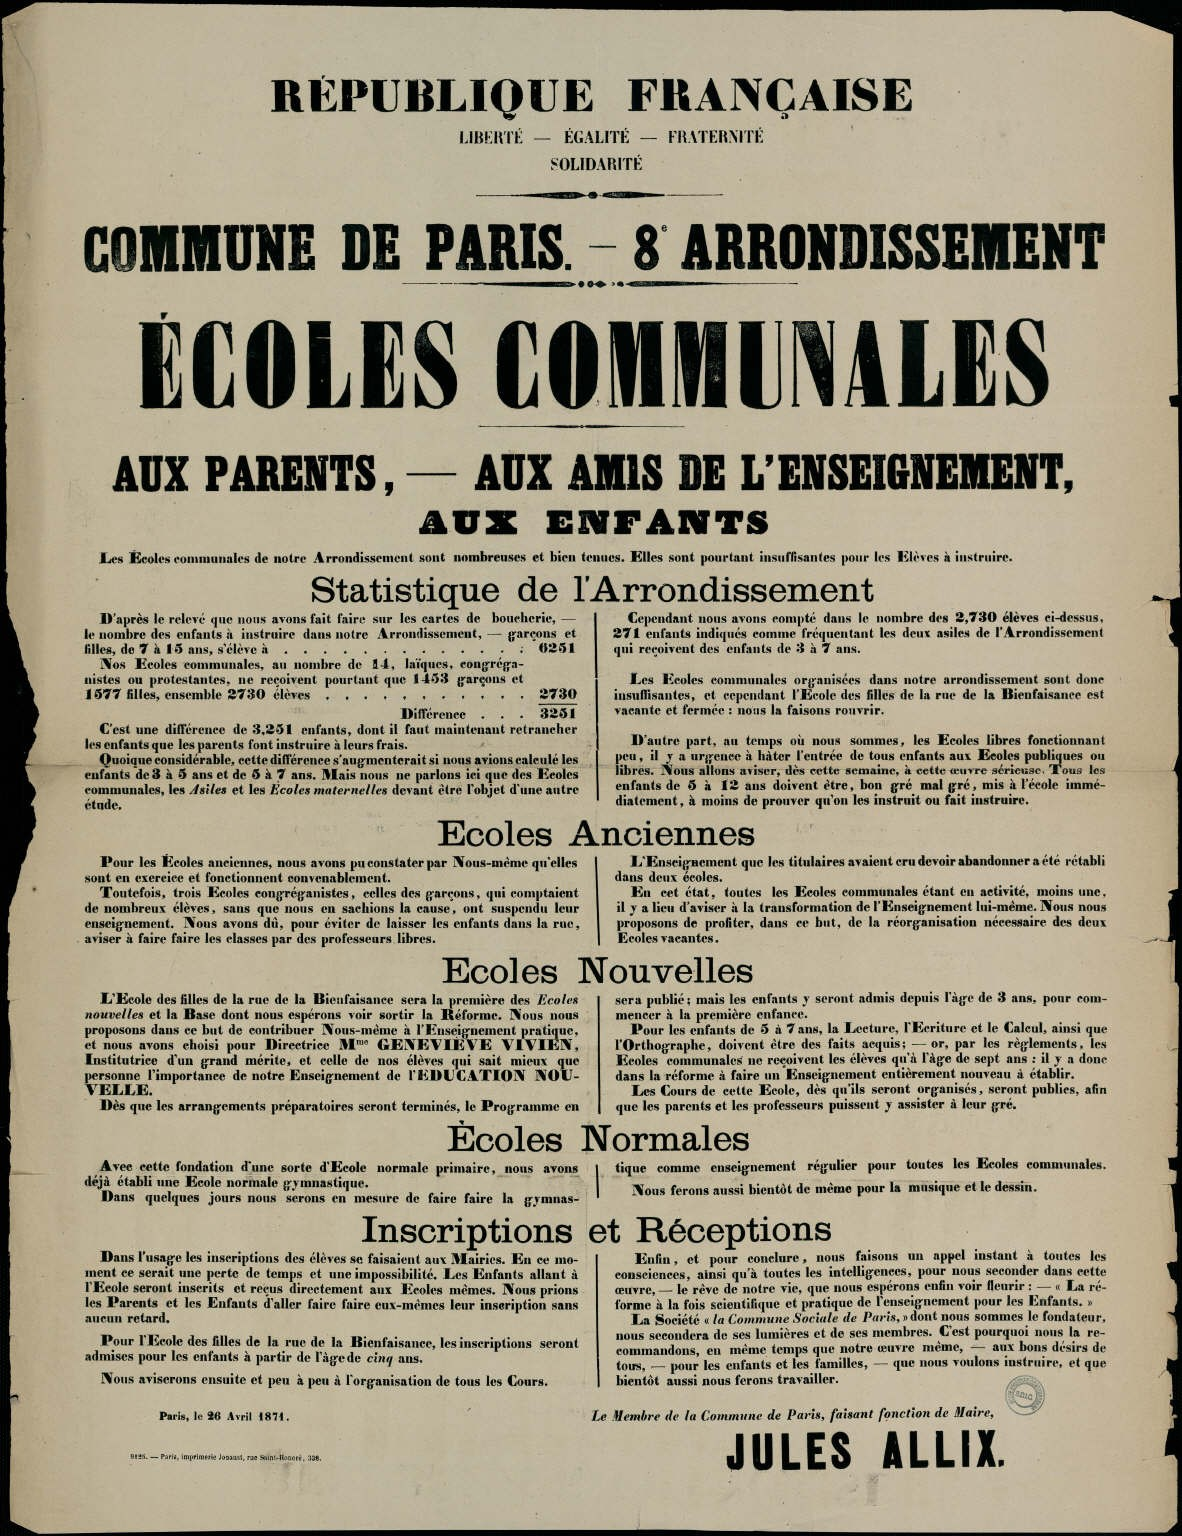 Affiche de la Commune de Paris, 26 avril 1871, Paris VIIIe, signée Jules Allix